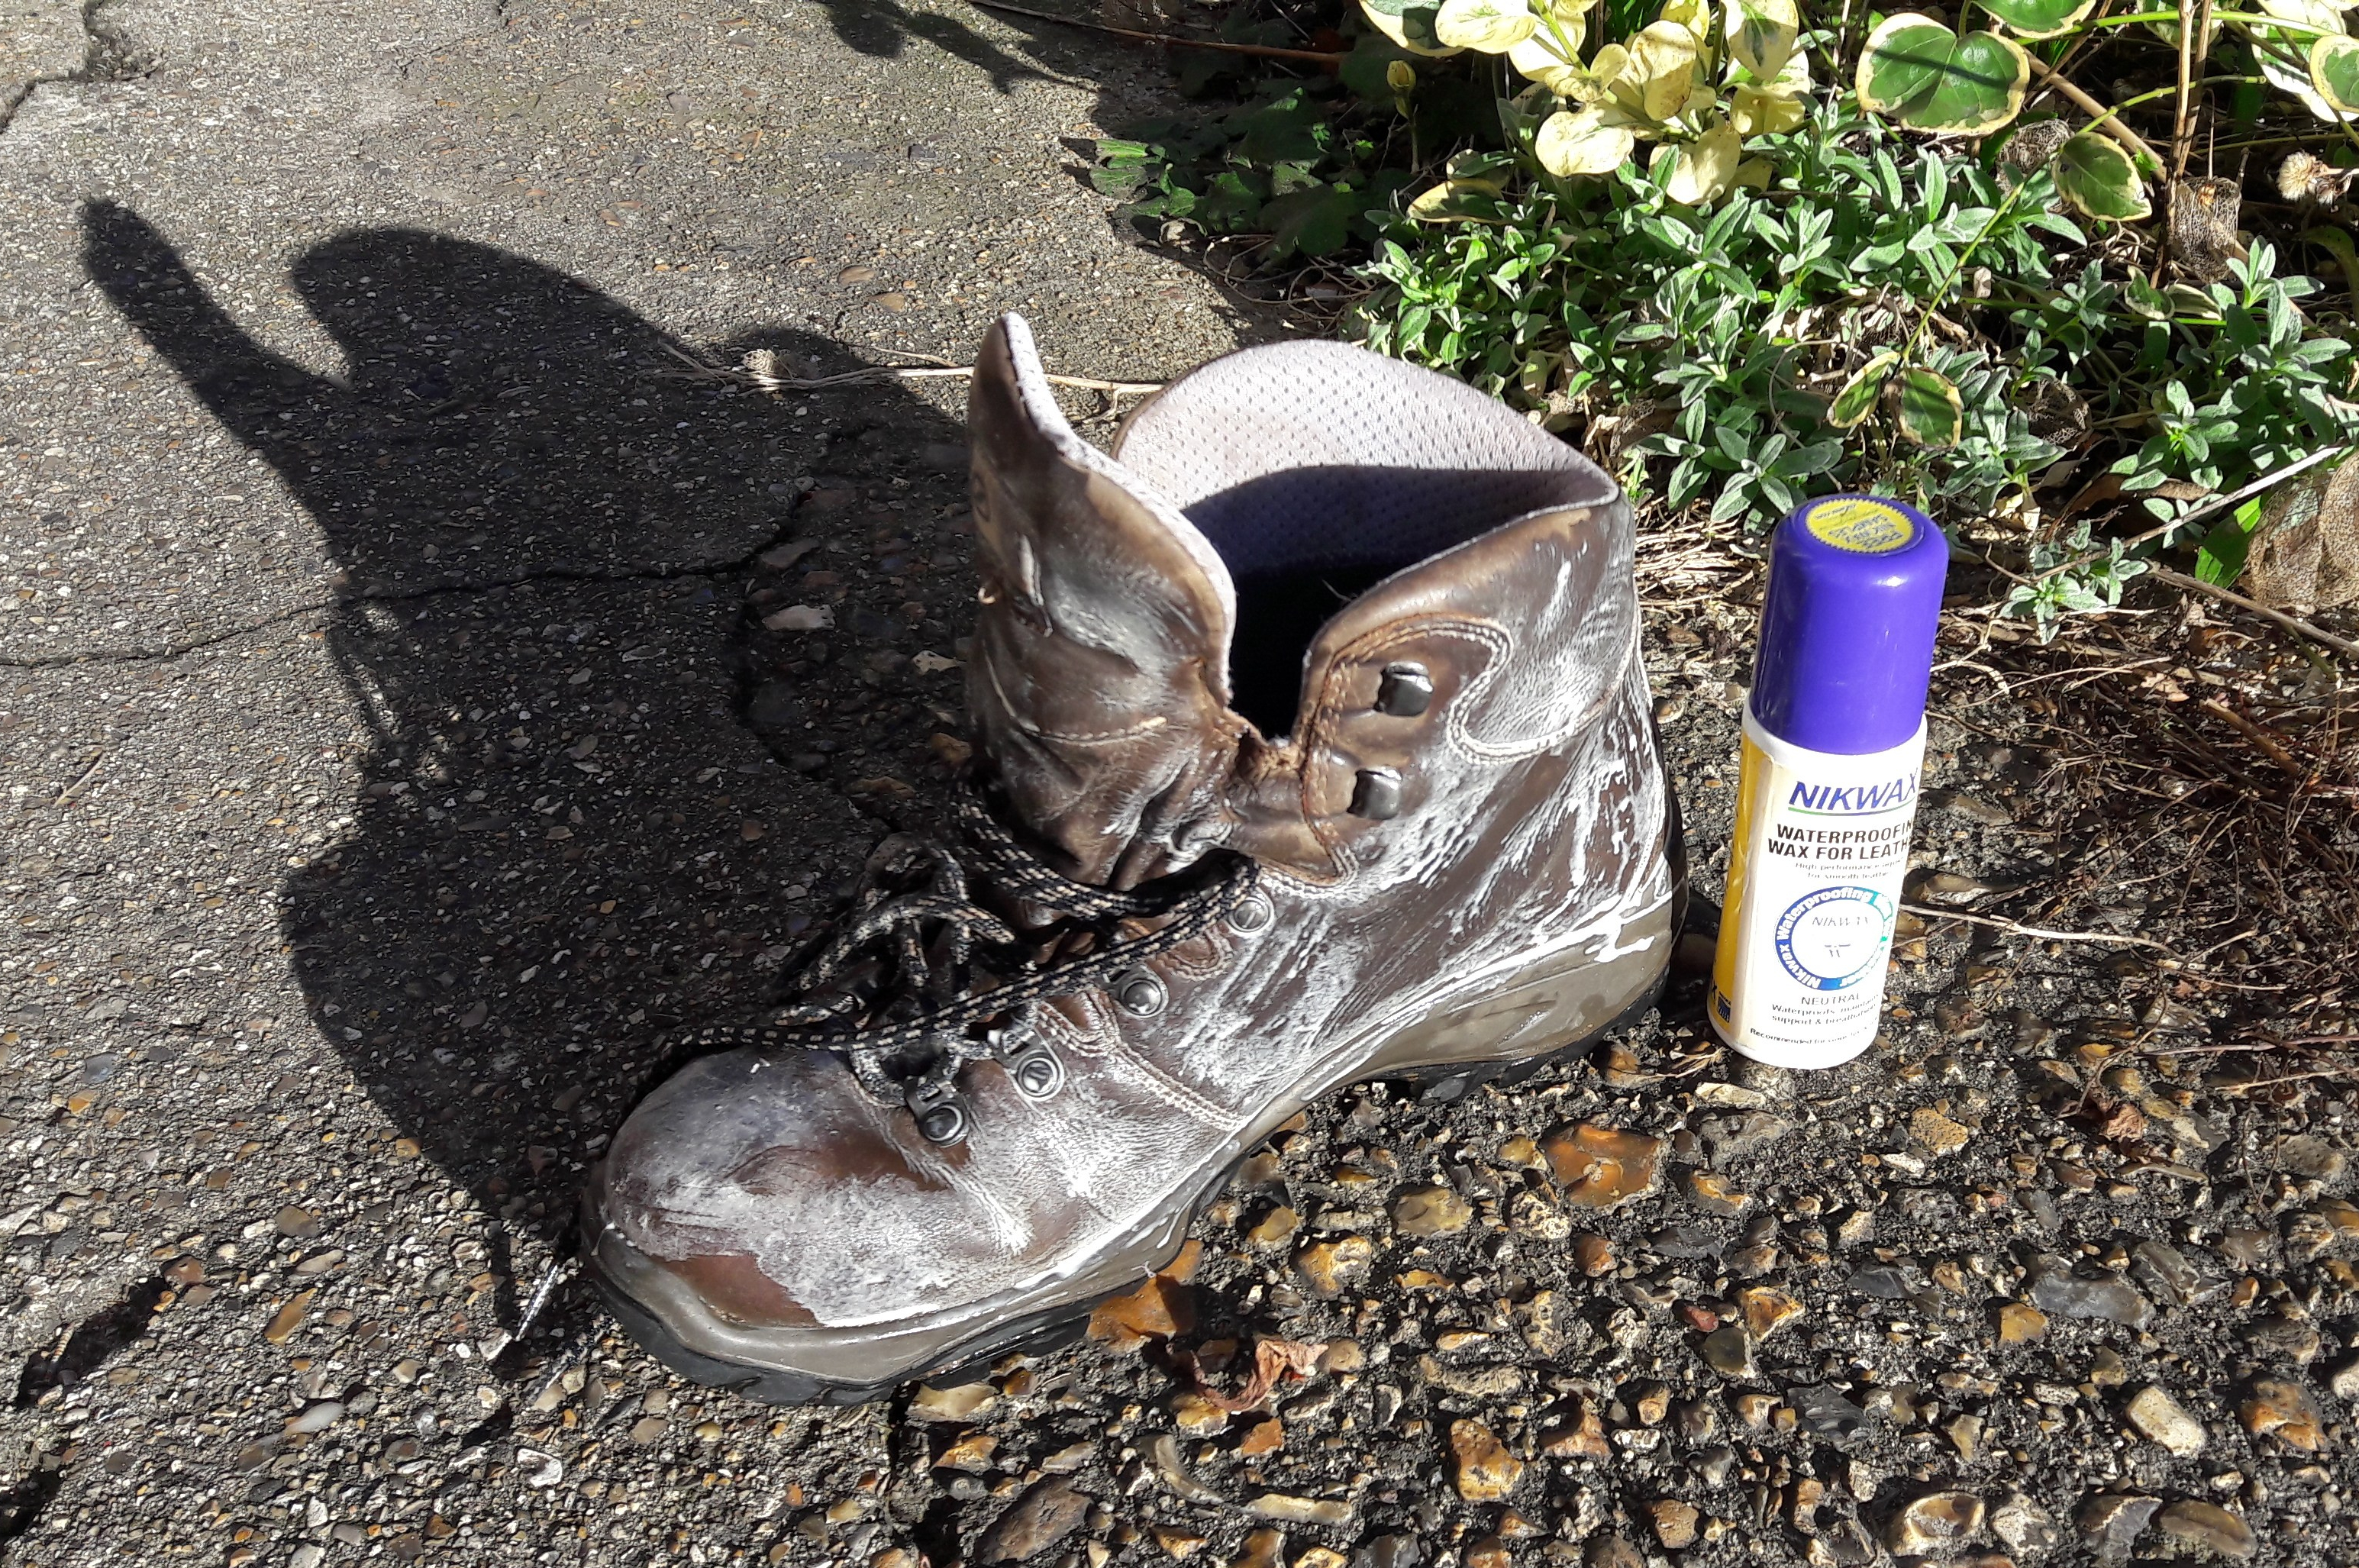 Waterproofing leather boot